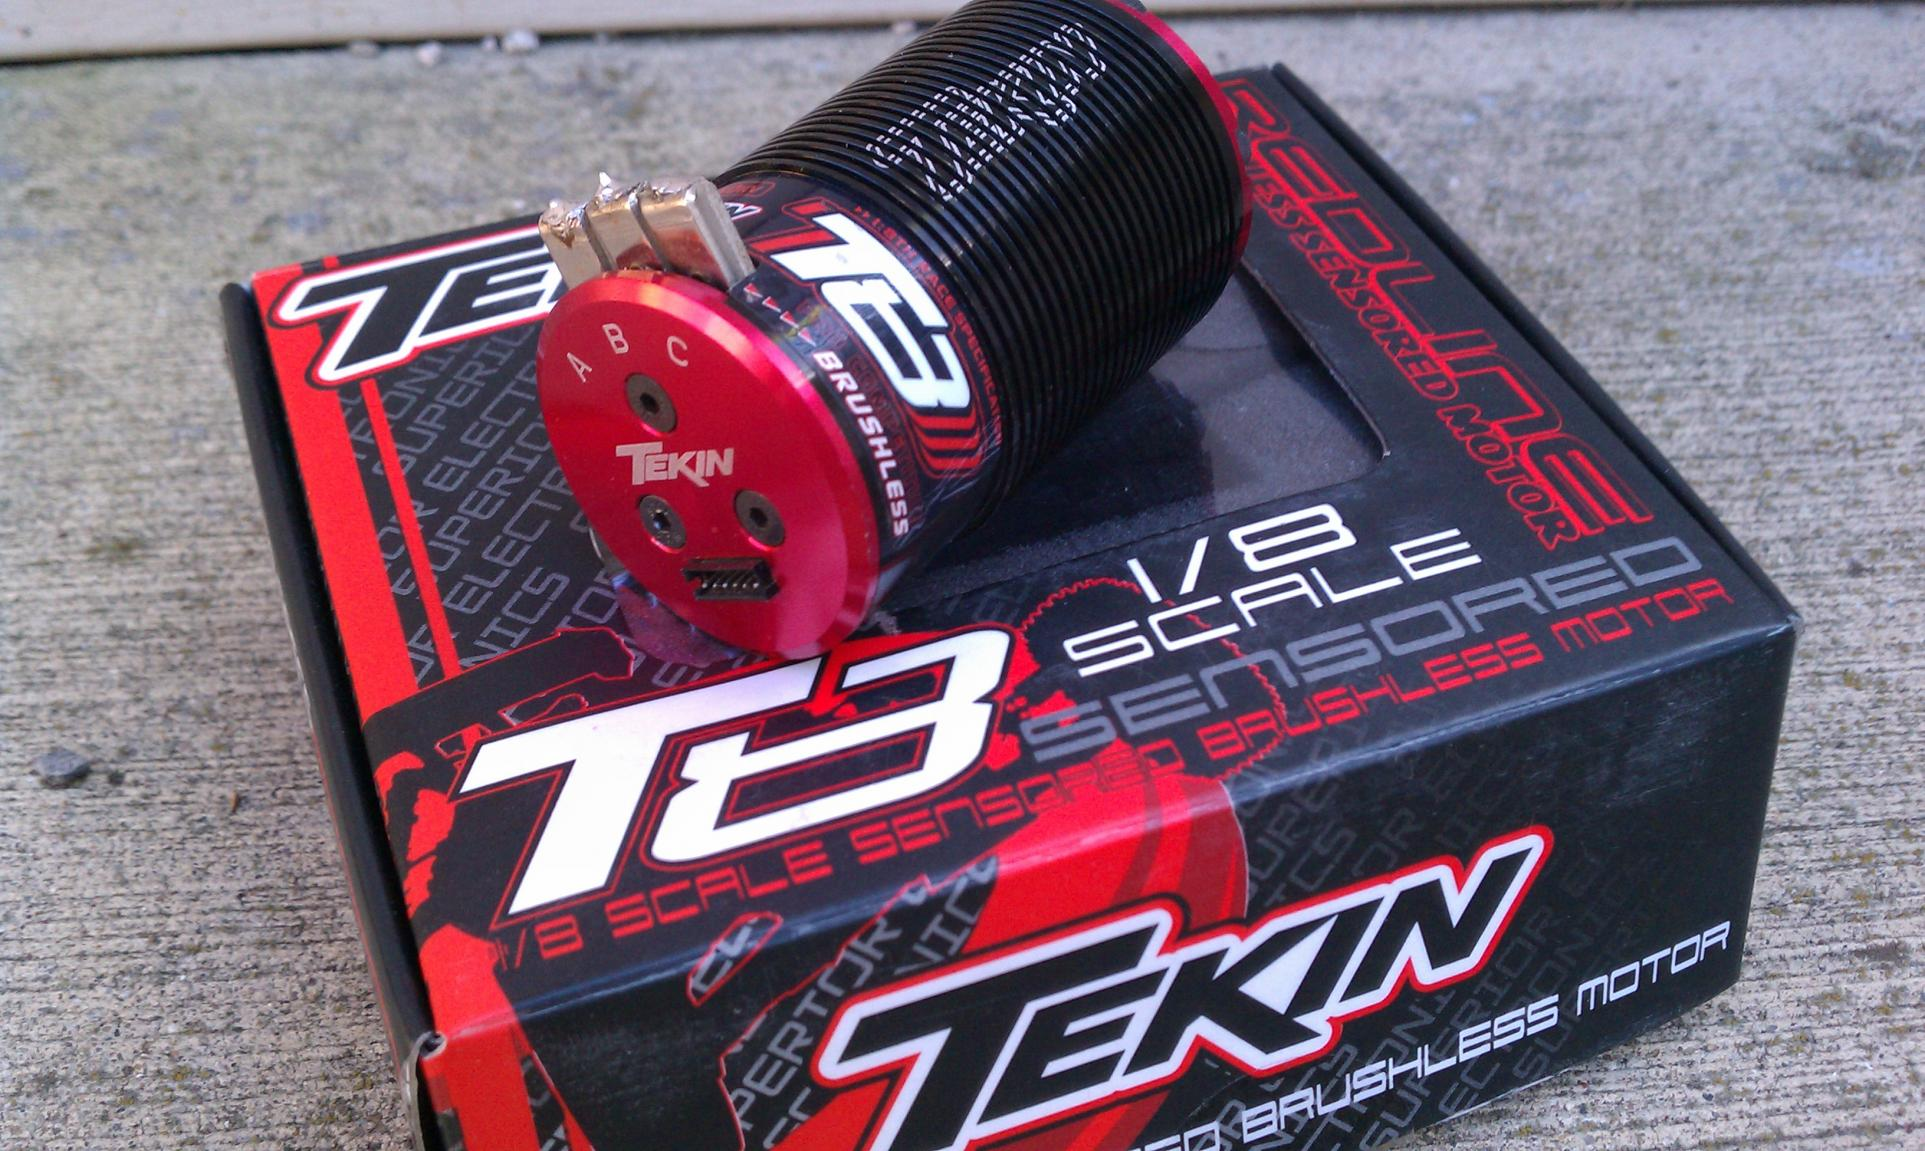 tekin t8 2050 kv 1 8 scale brushless motor and new unused. Black Bedroom Furniture Sets. Home Design Ideas